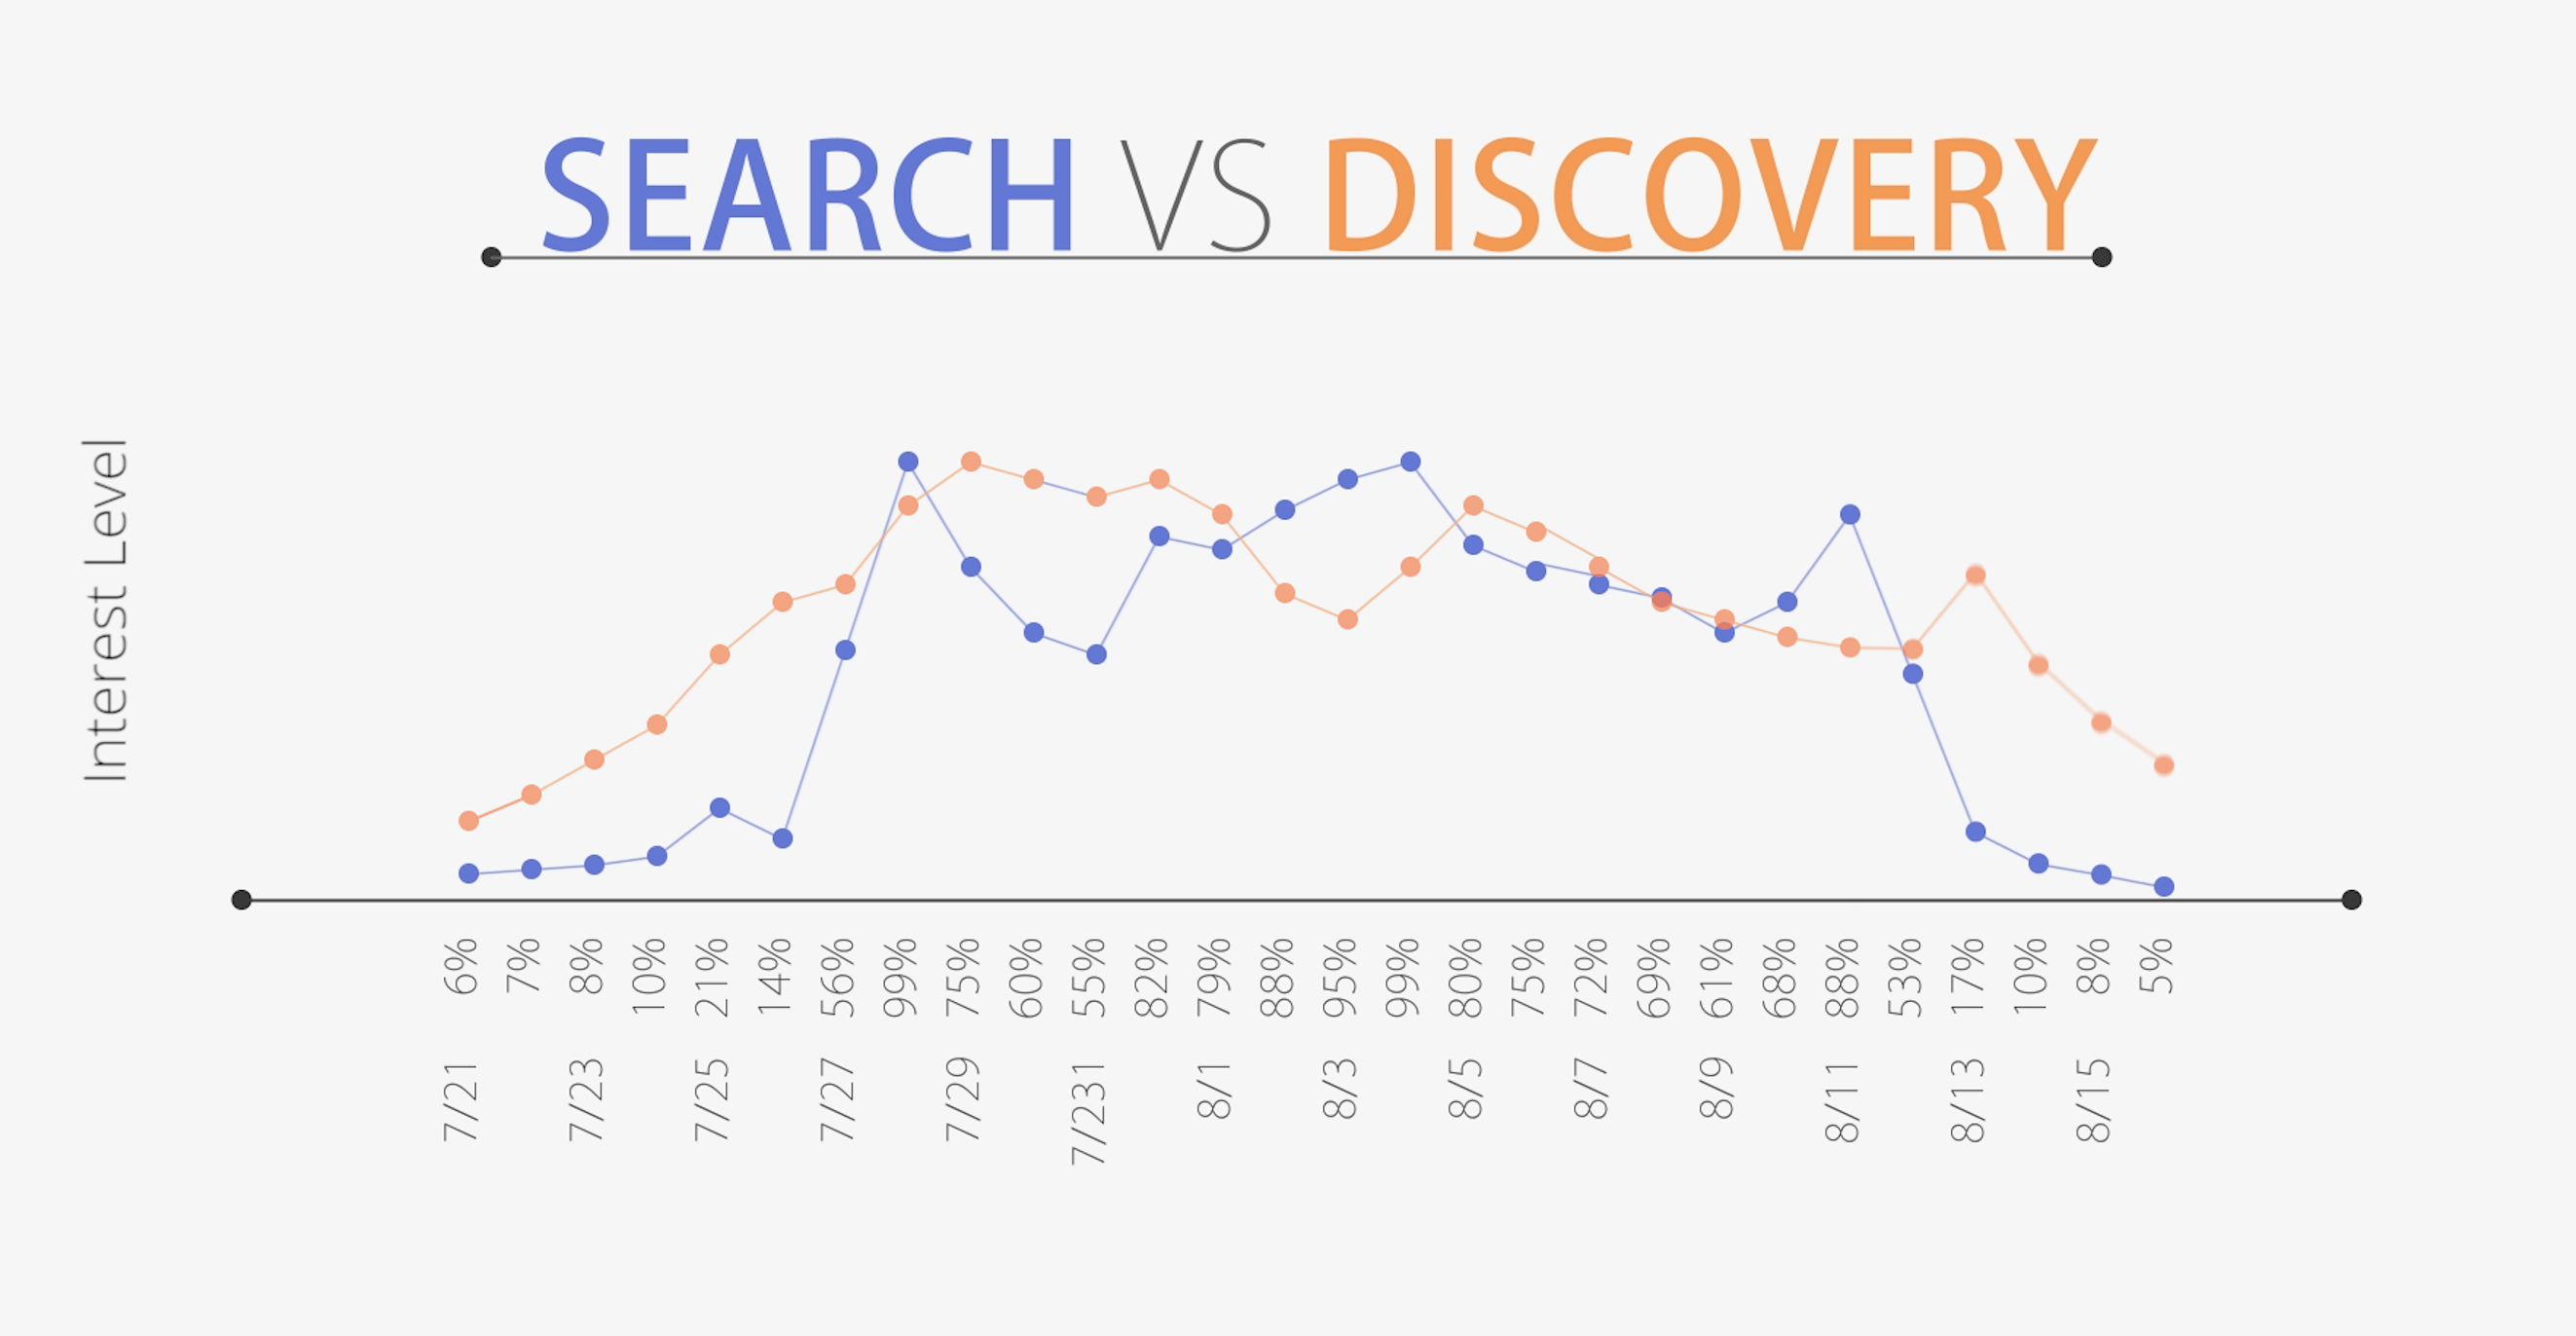 Search vs Discovery - Outbrain vs Google Trends data